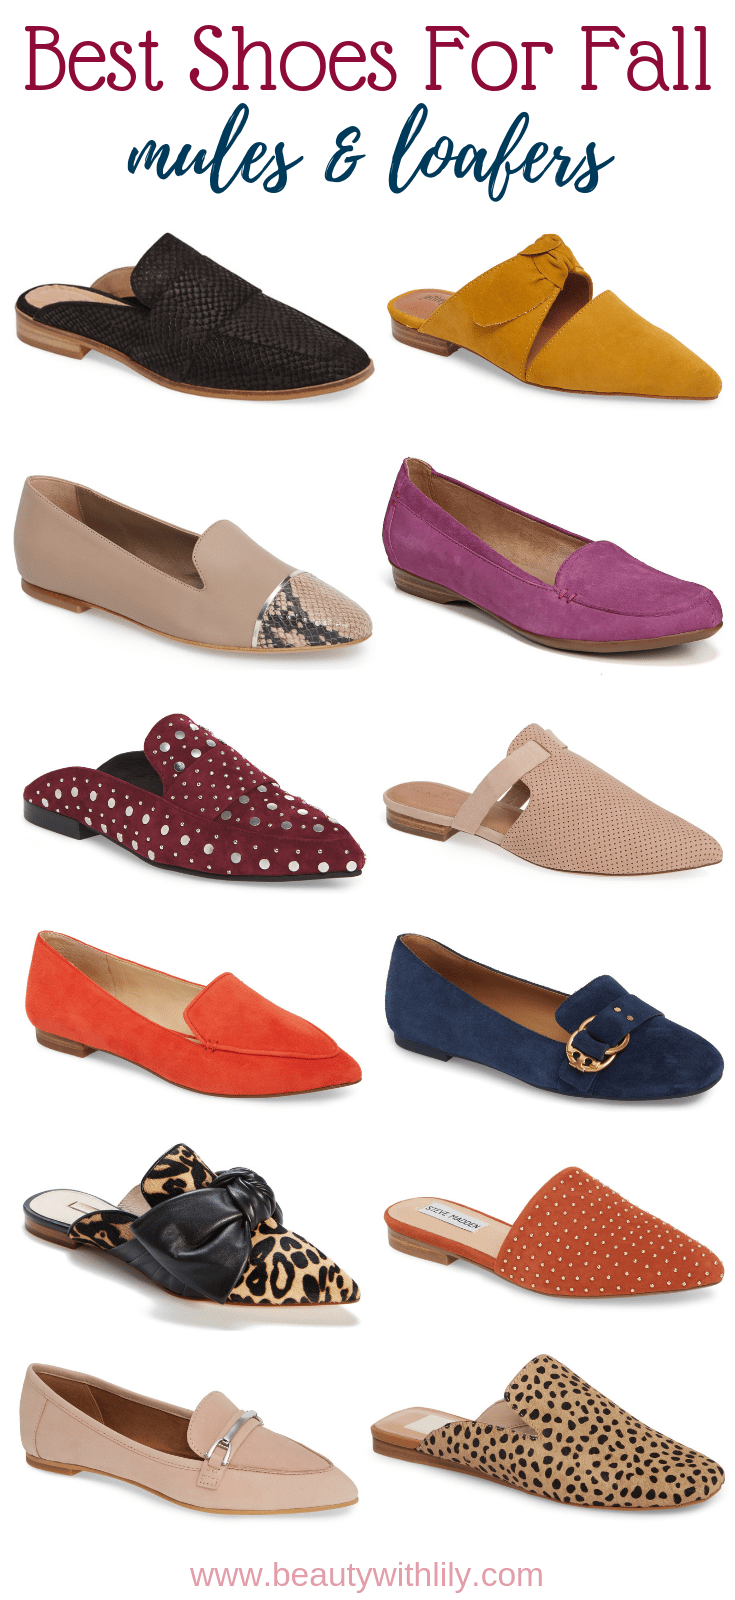 Best Shoes For Fall // Best Mules For Fall // Best Mules // Cute Mules // Comfortable Shoes // Shoes For Fall // Mules For Fall | Beauty With Lily